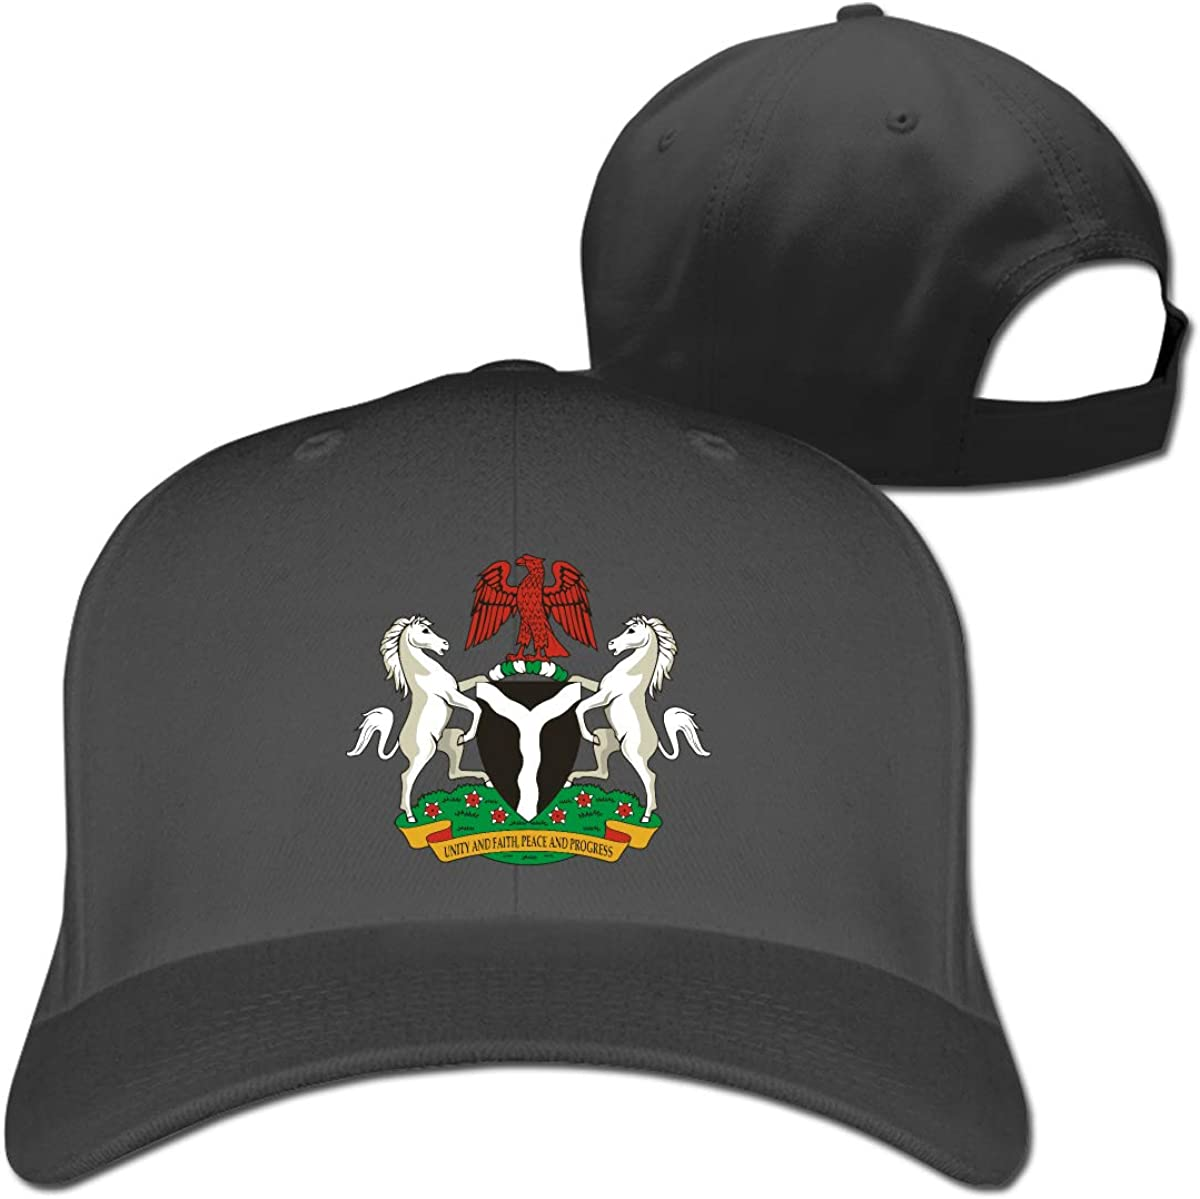 Coat of Arms of Nigeria Fashion Adjustable Cotton Baseball Caps Trucker Driver Hat Outdoor Cap Black